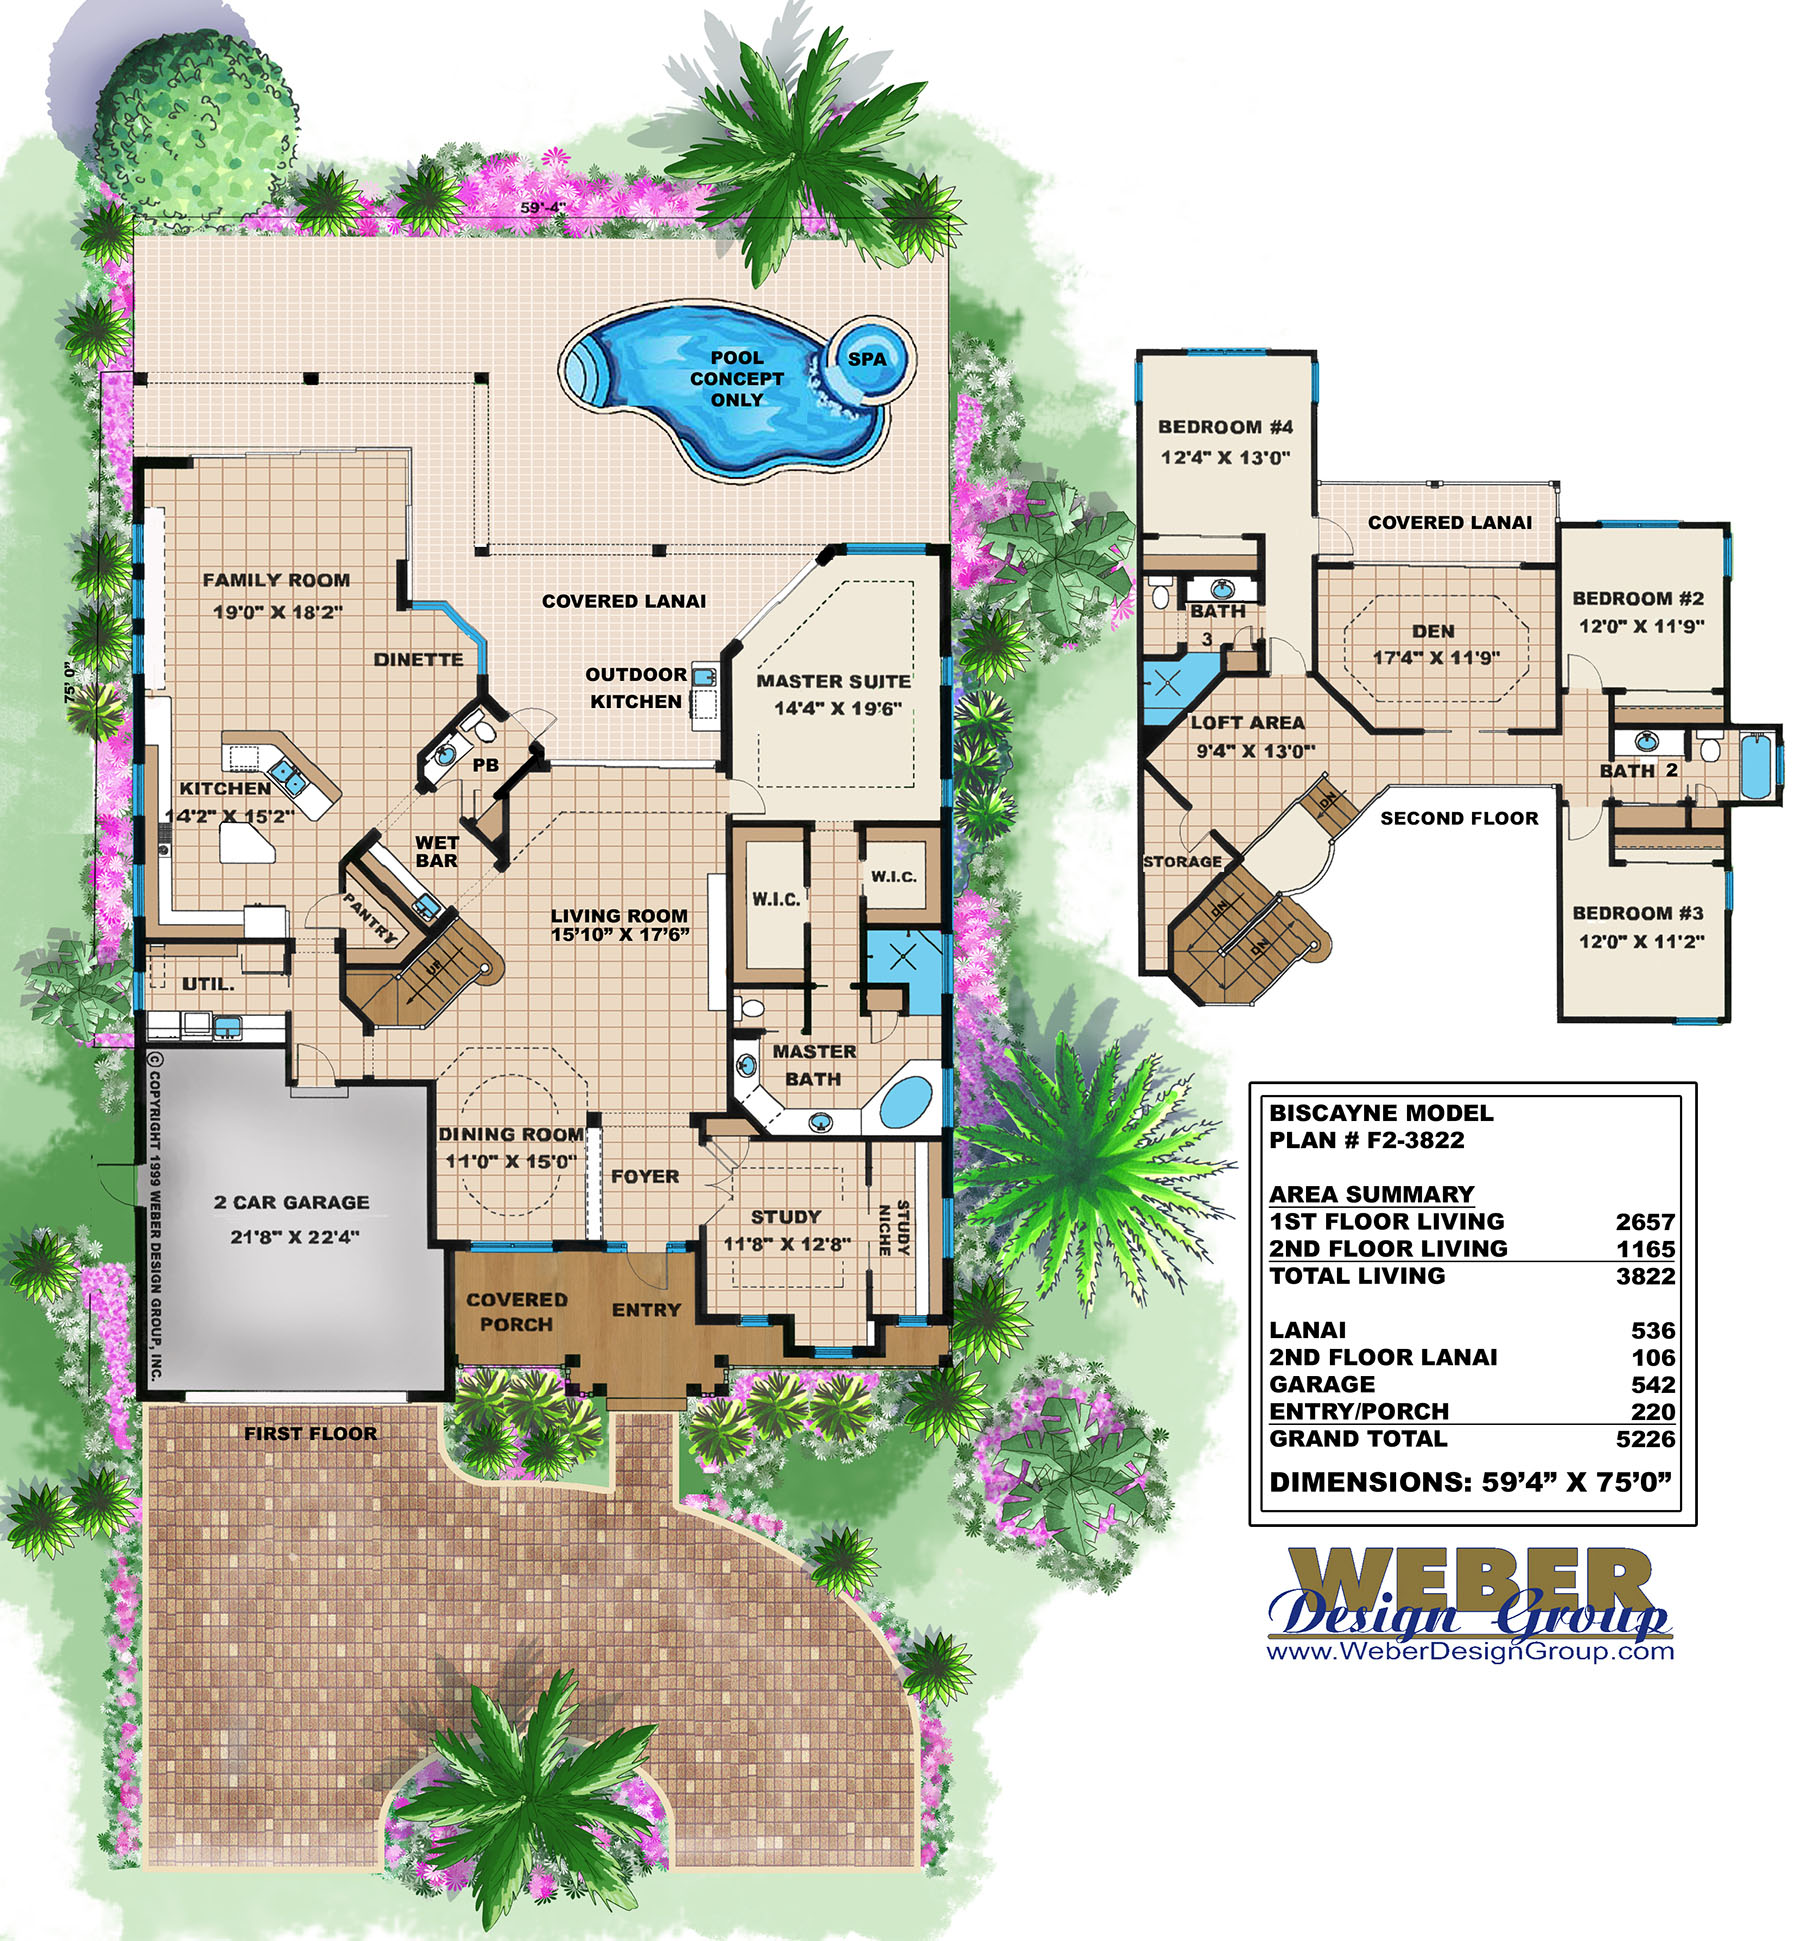 2 Story Old Florida House Floor Plan Open Layout Lanai Pool